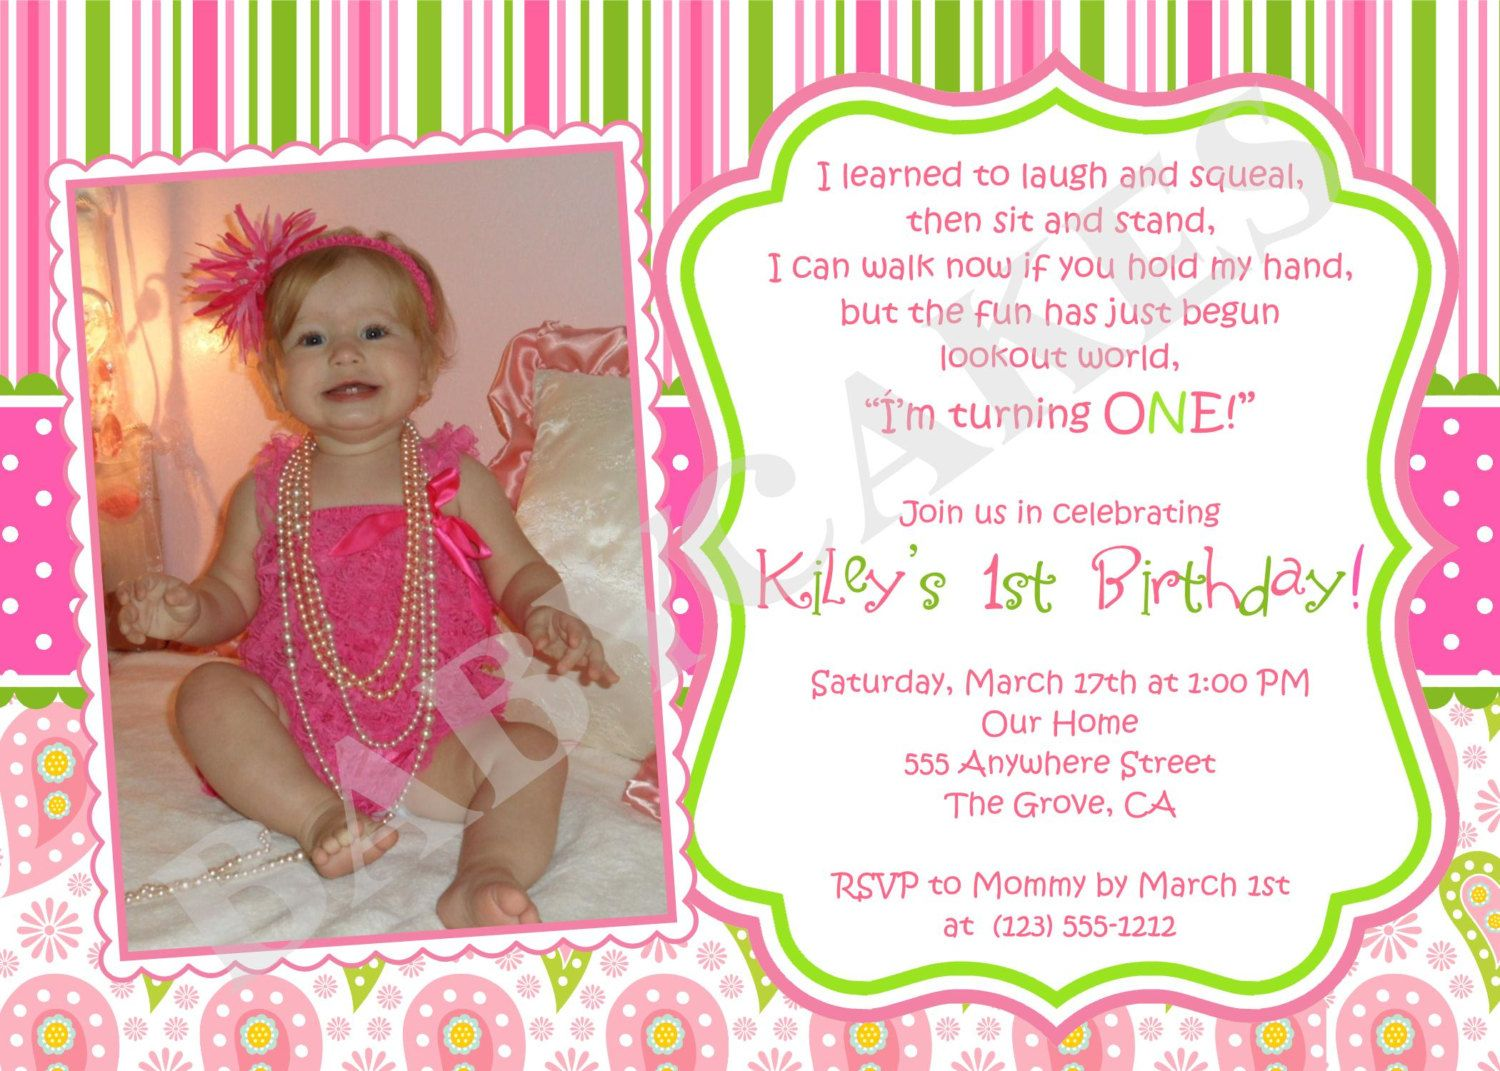 Awesome First Birthday Invitation Wording Ideas 1st Birthday Invitation Wording Birthday Invitation Message 1st Birthday Invitations Girl